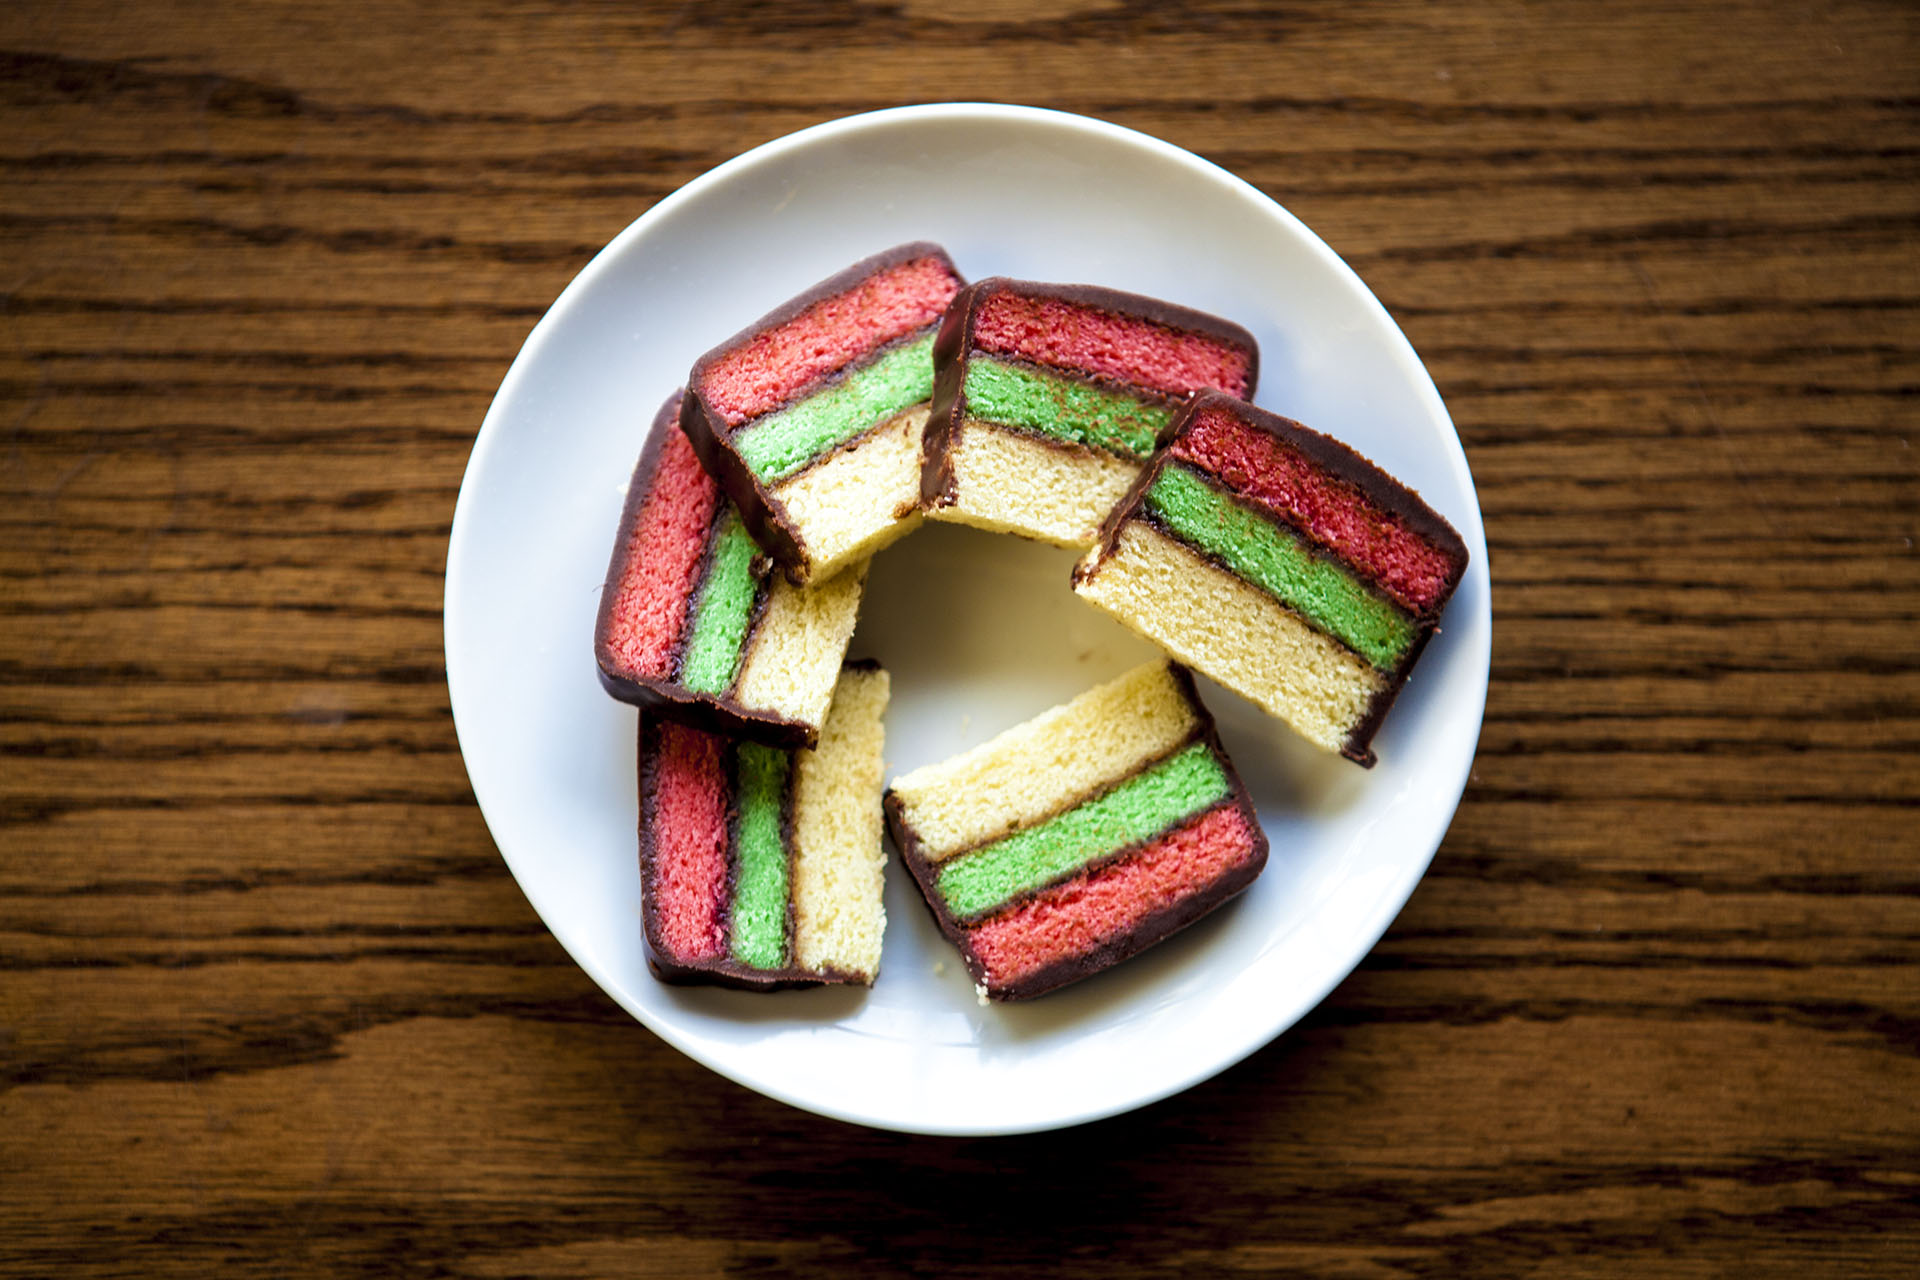 Delicious rainbow cookies! Pre-cut for sharing!